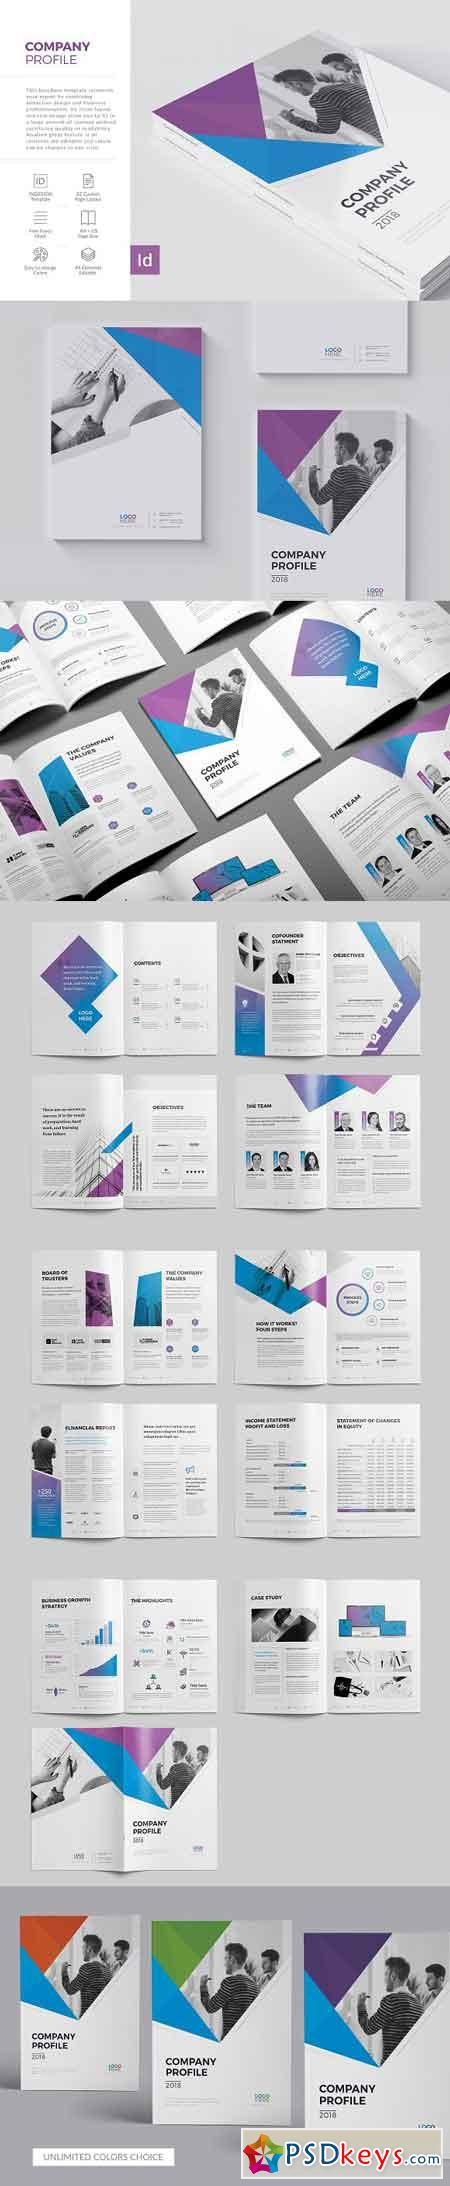 Company Profile 22 Pages 2972141